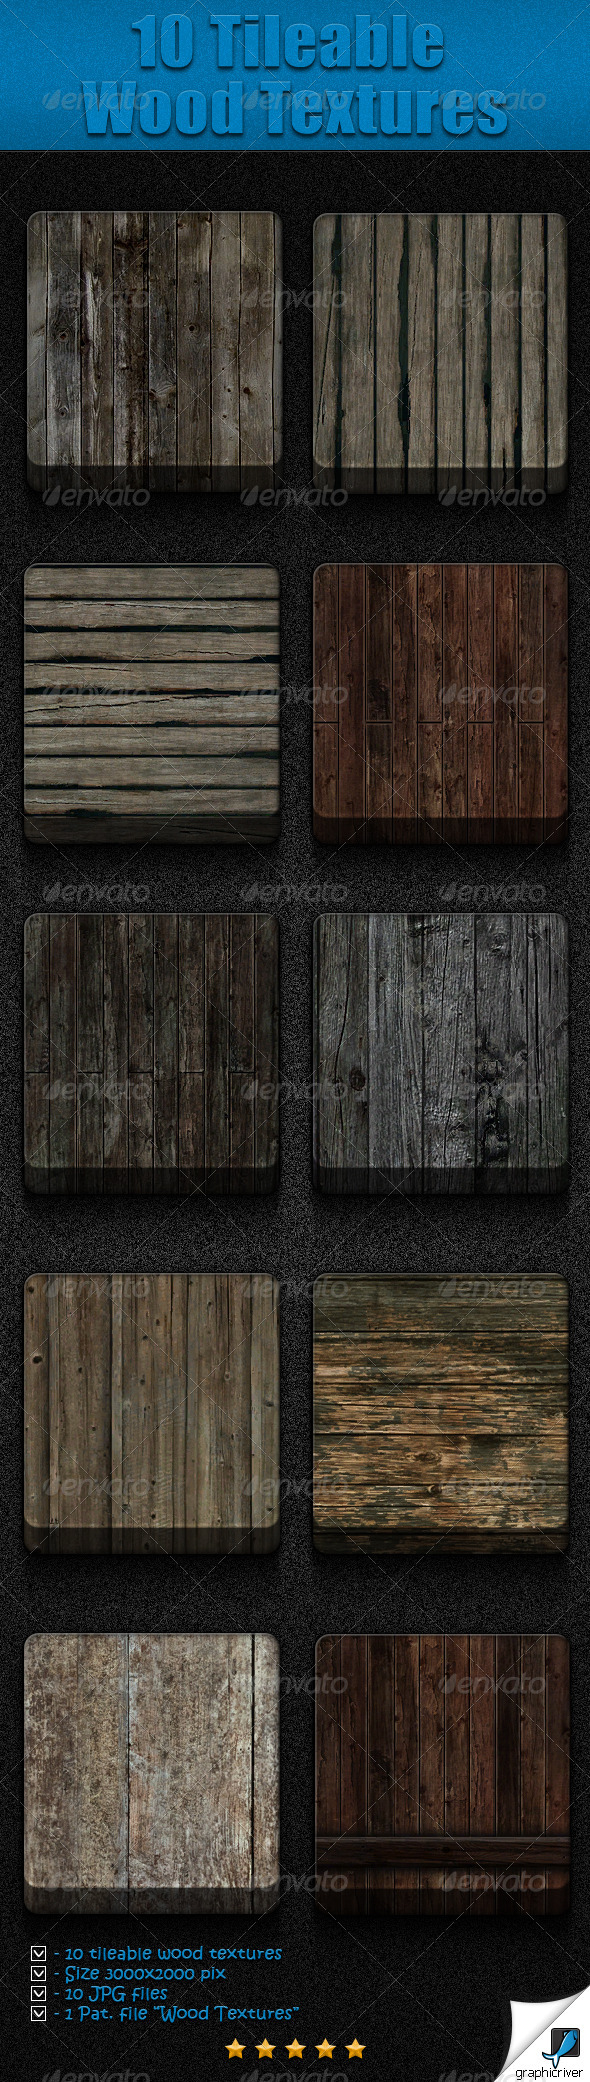 GraphicRiver 10 Tileable Wood Textures 3896507